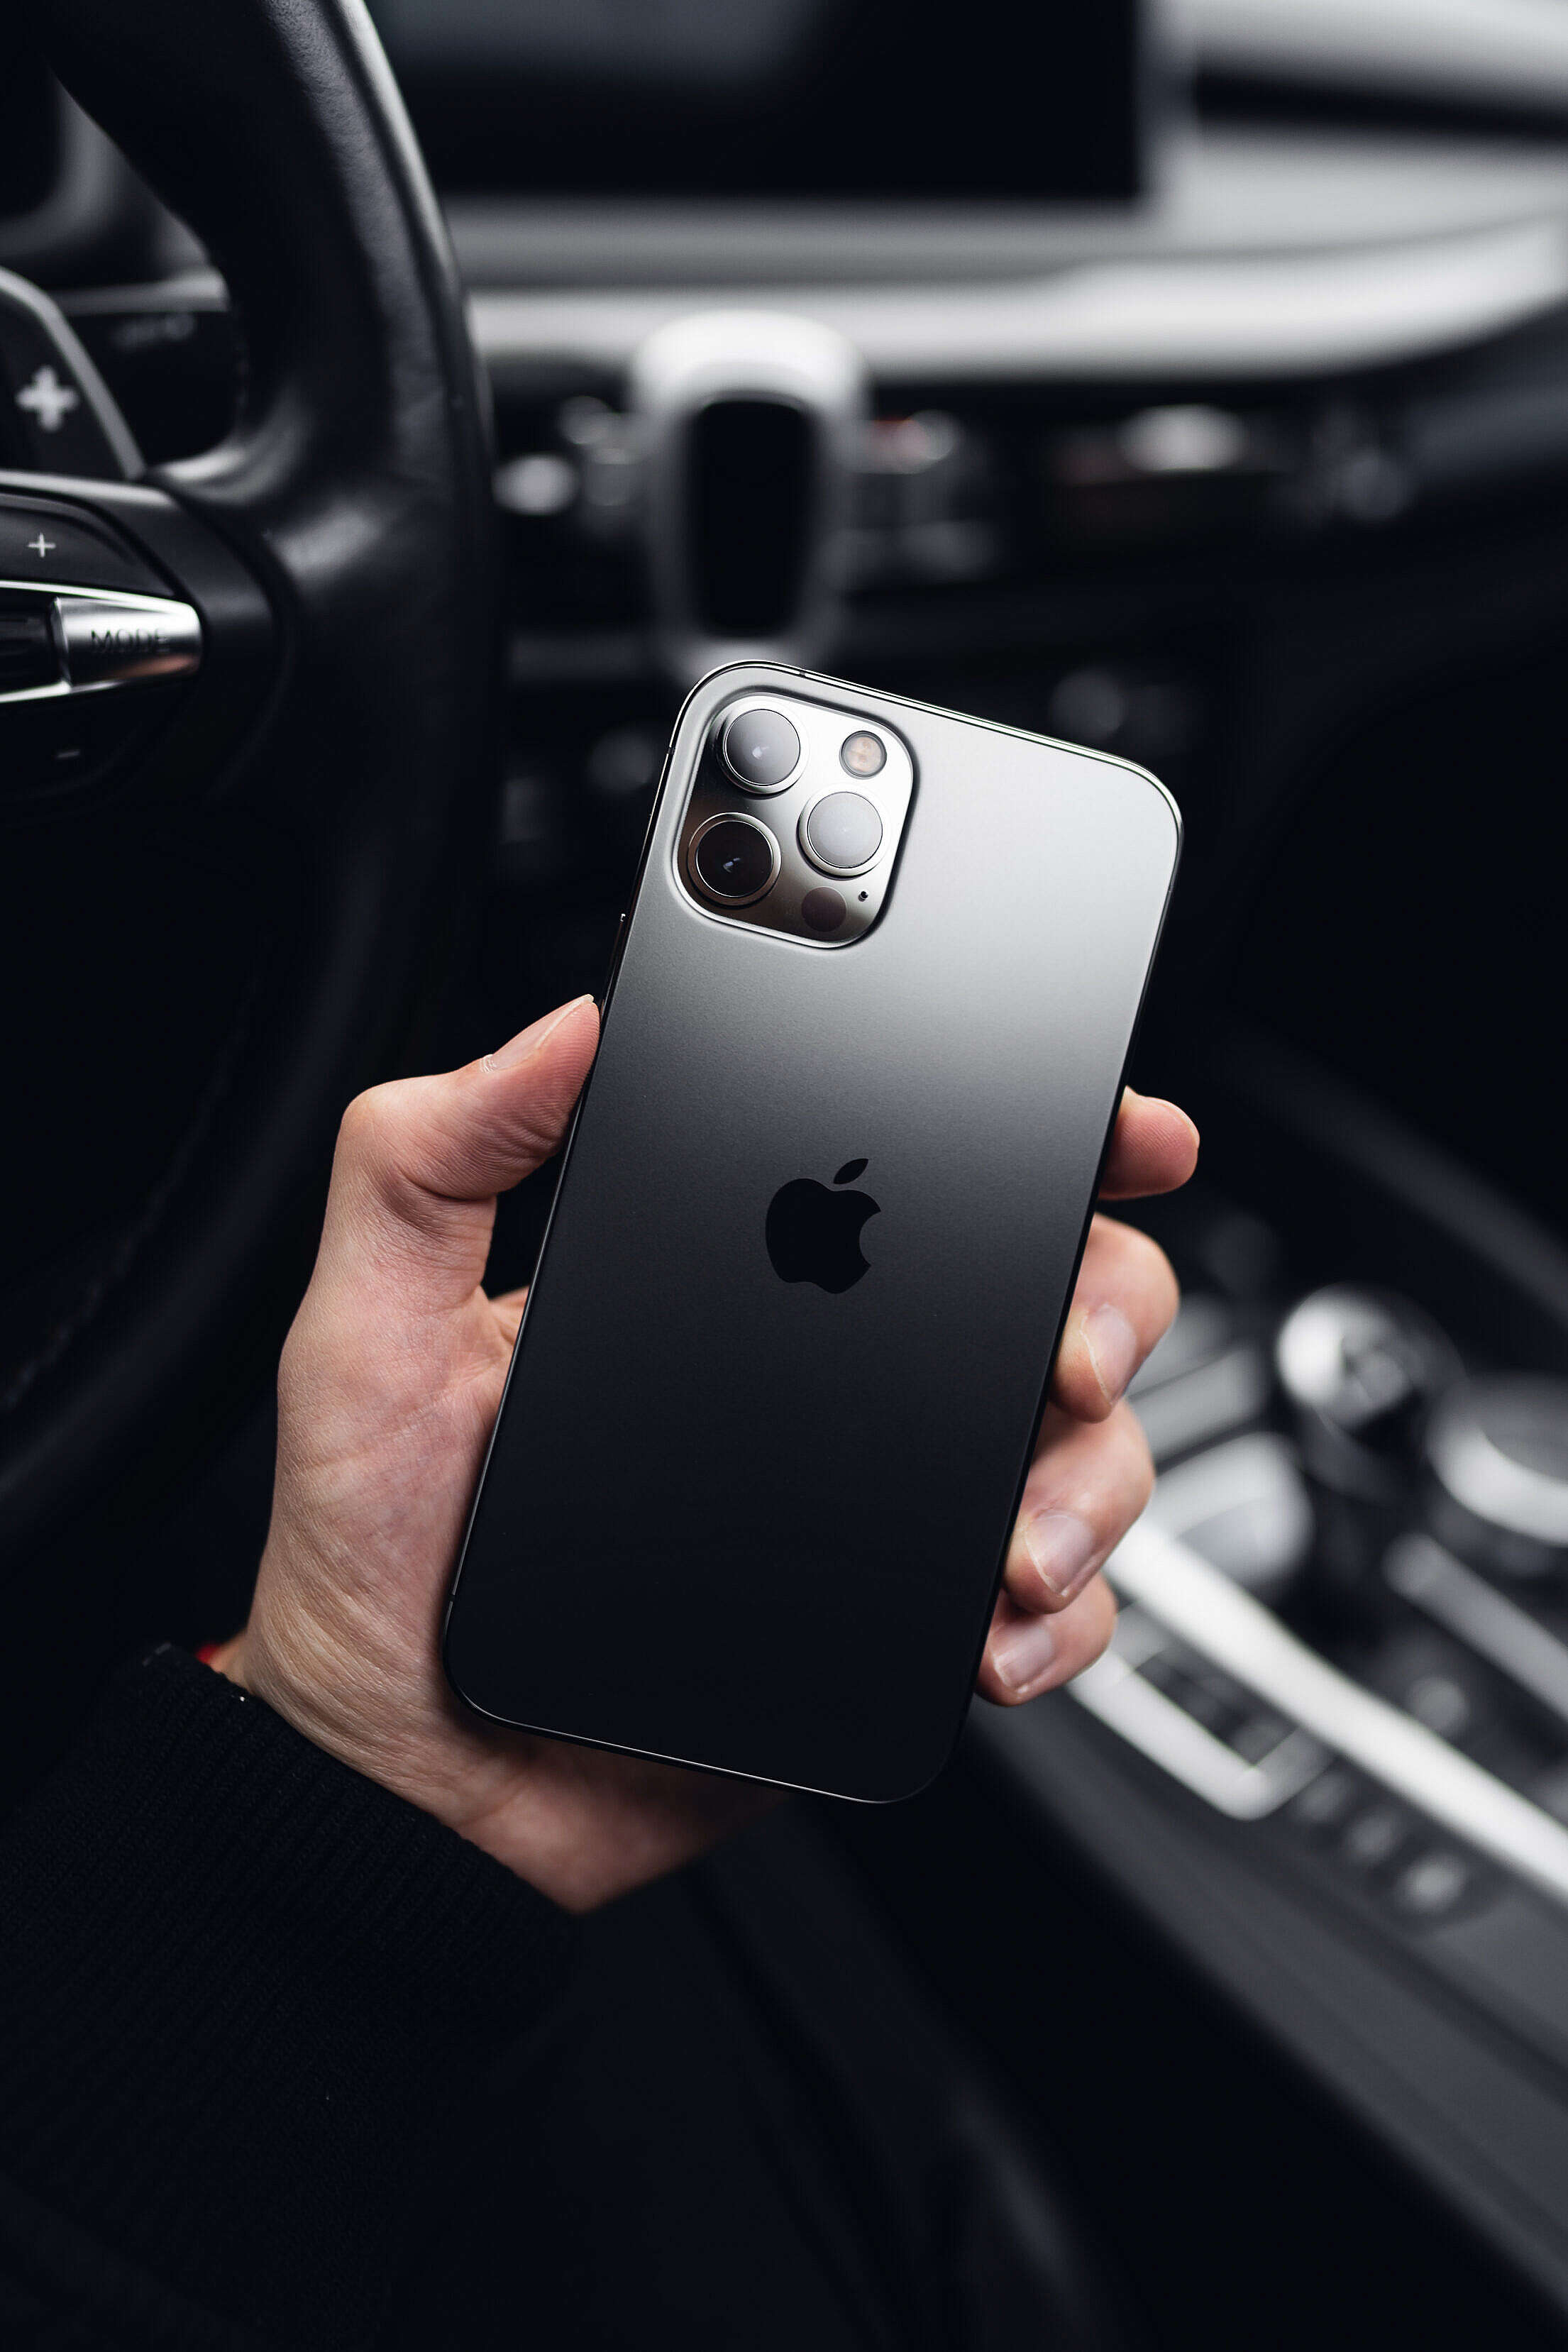 Man Holding a New iPhone 12 Pro Free Stock Photo